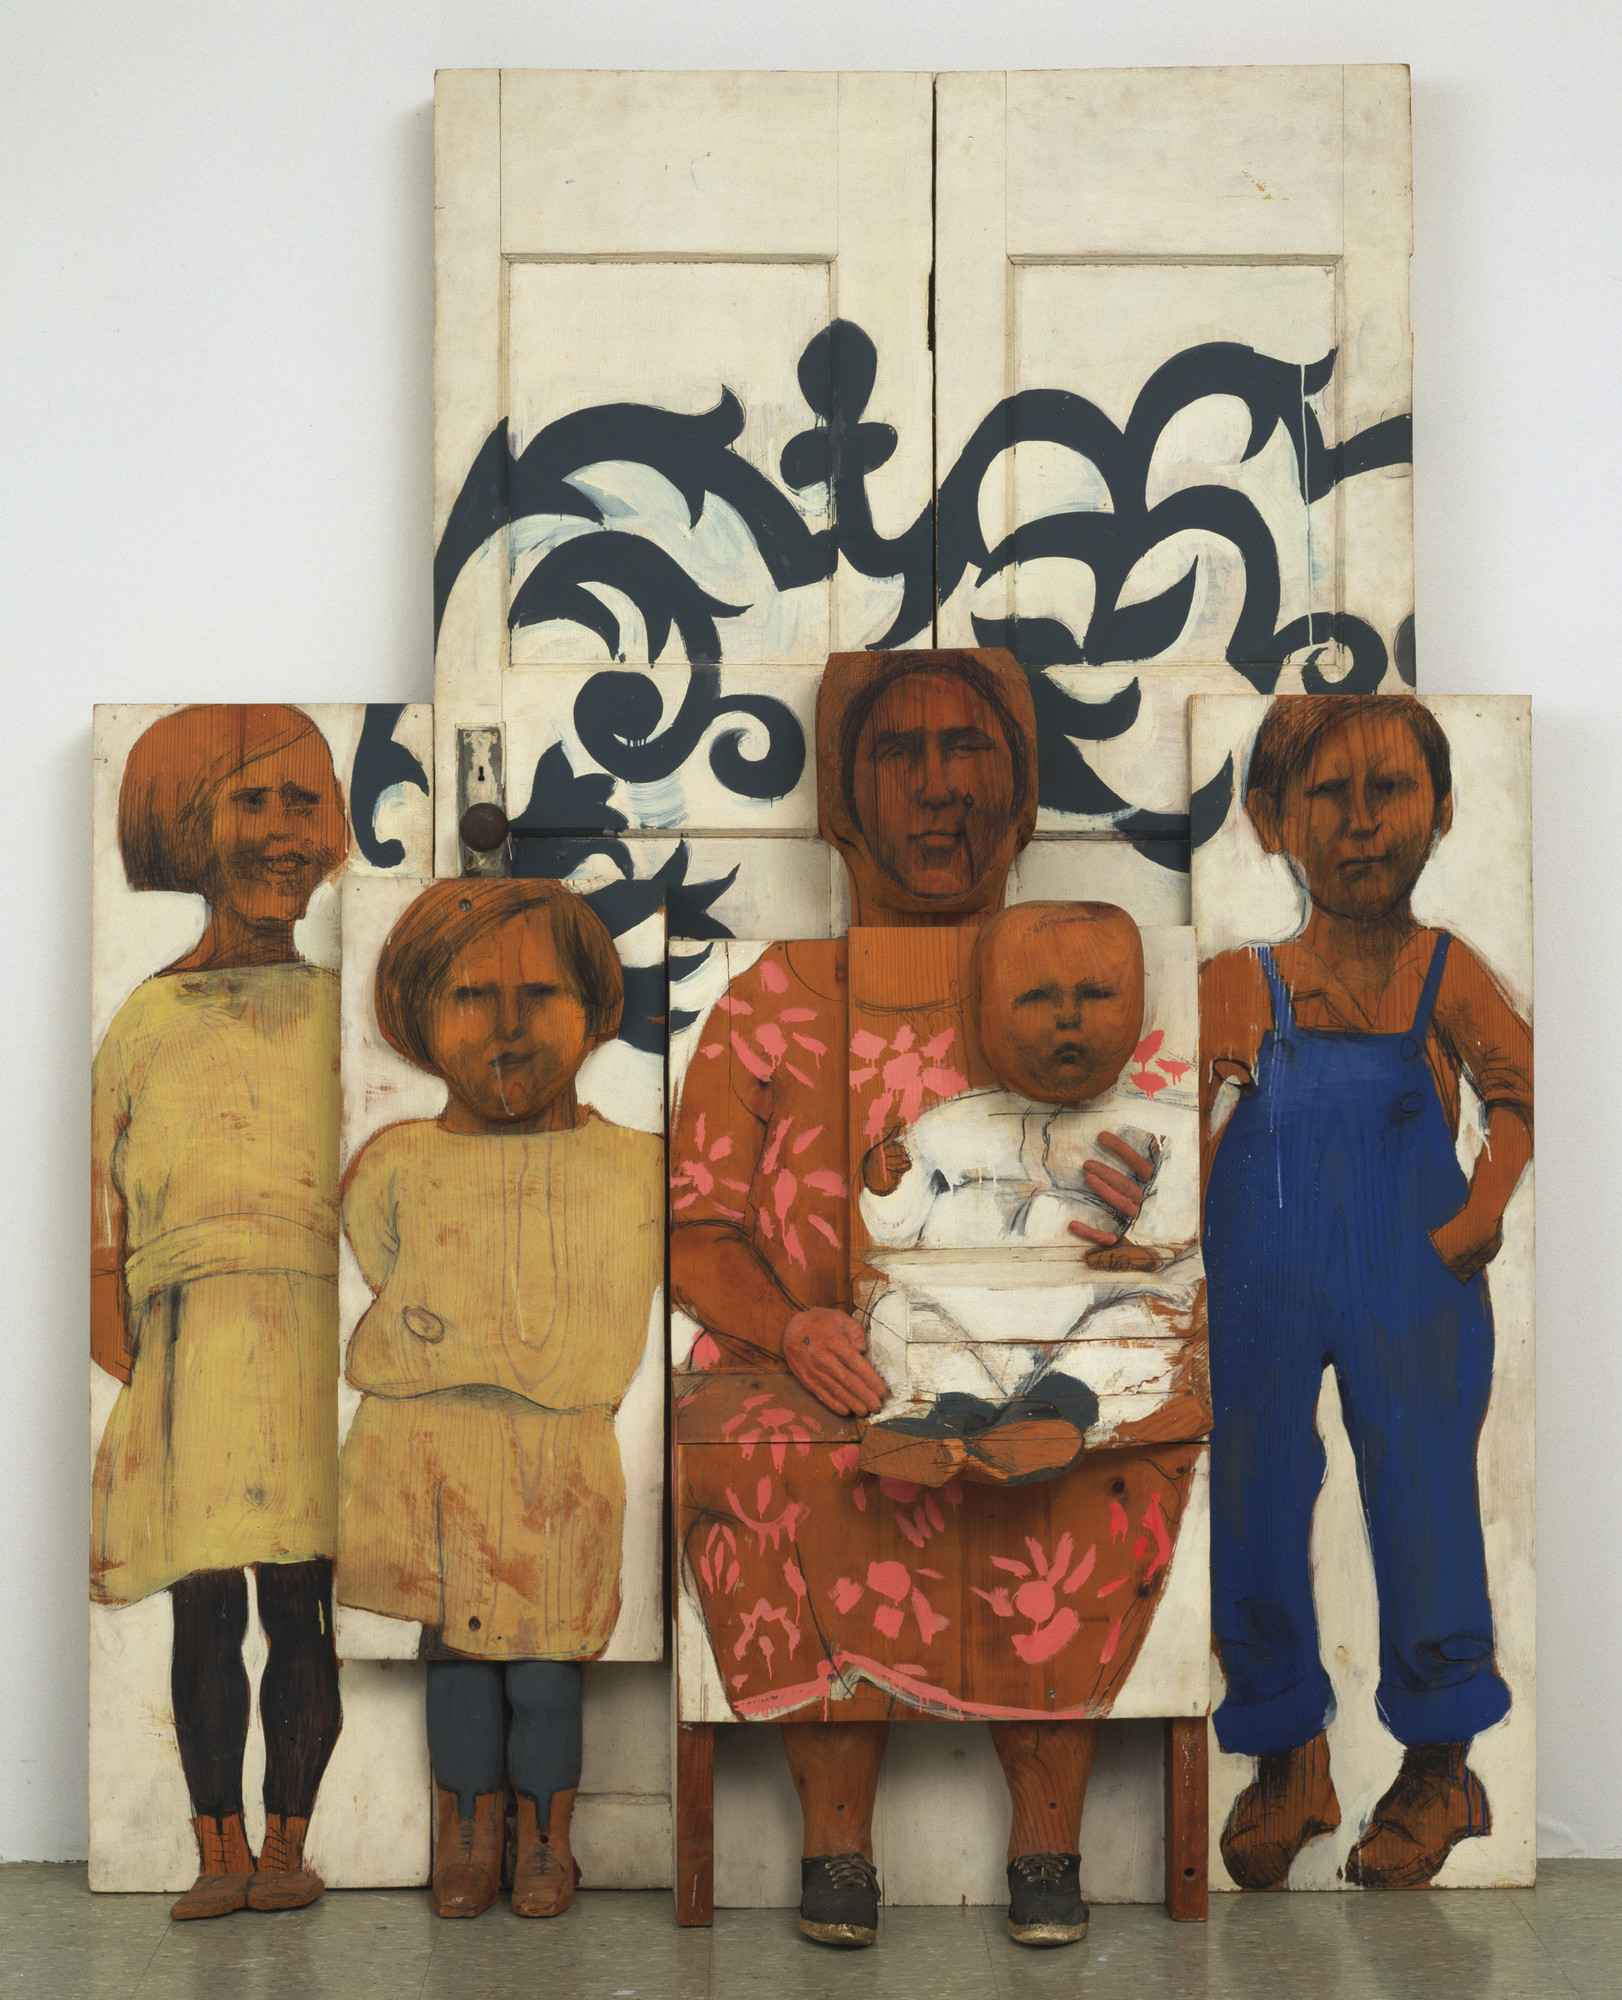 Marisol (Marisol Escobar). The Family. 1962